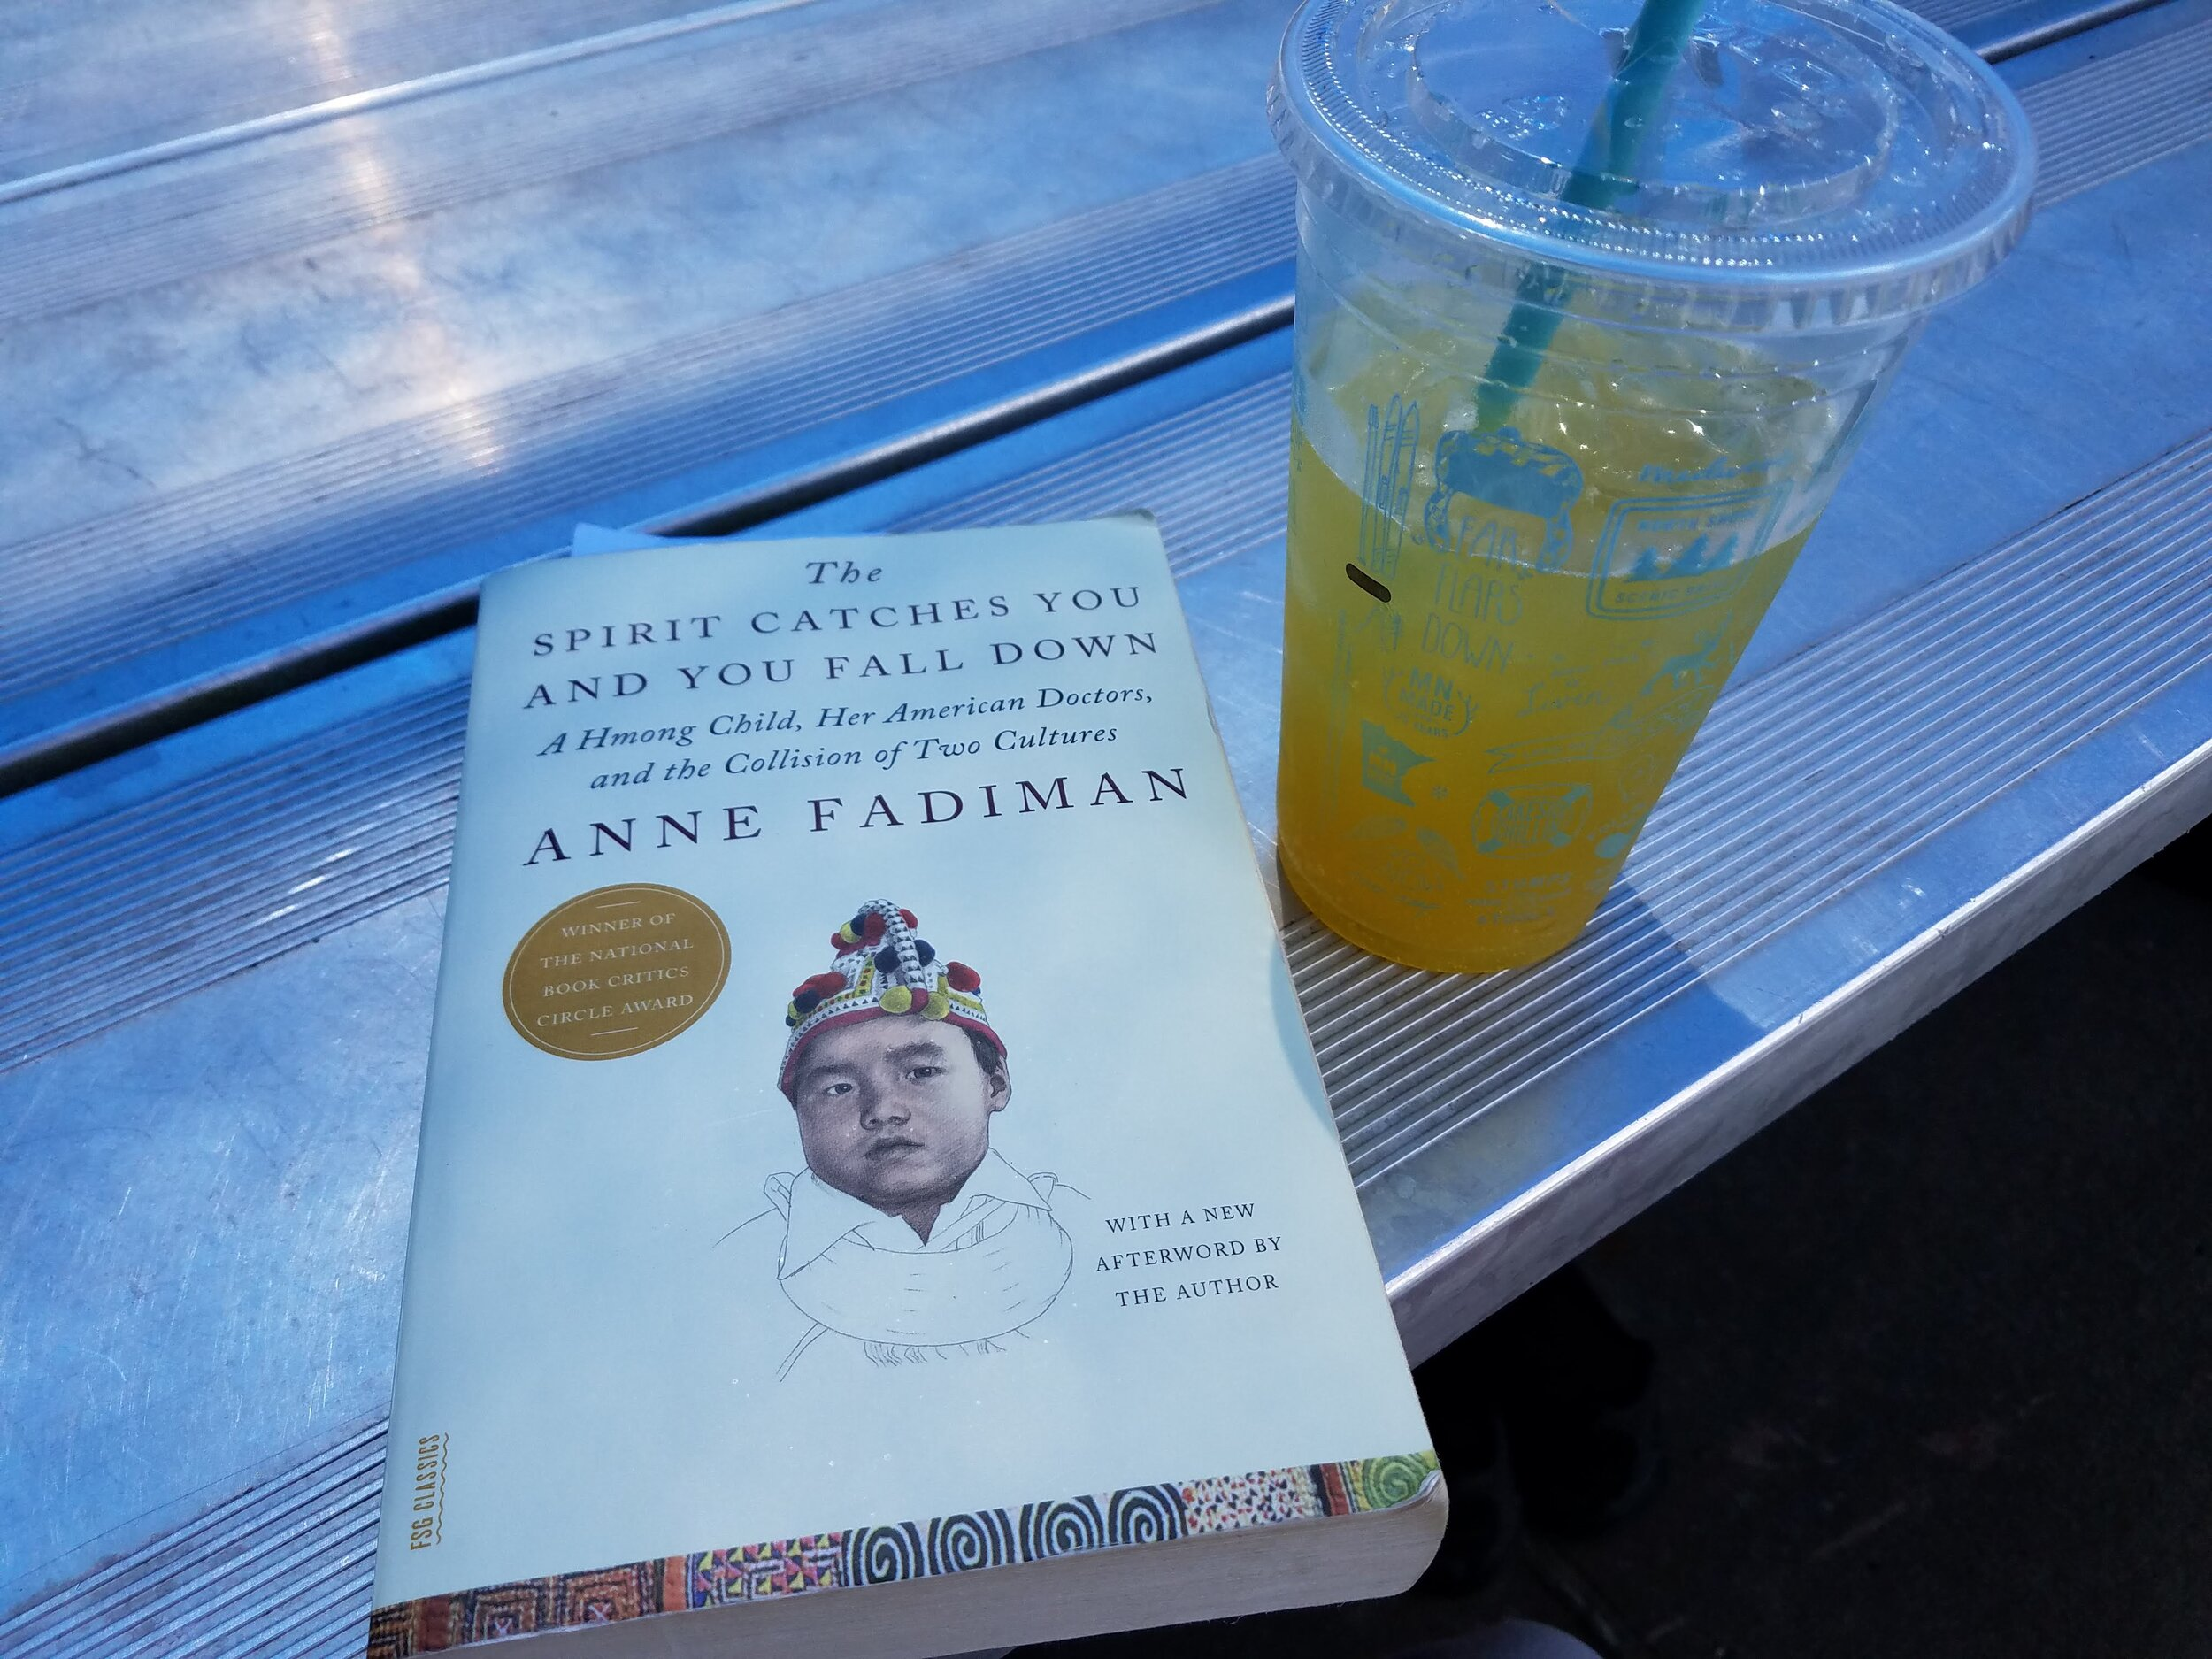 The Spirit Catches You and You Fall Down by Anne Fadiman. Not light summer reading but a good book just the same.